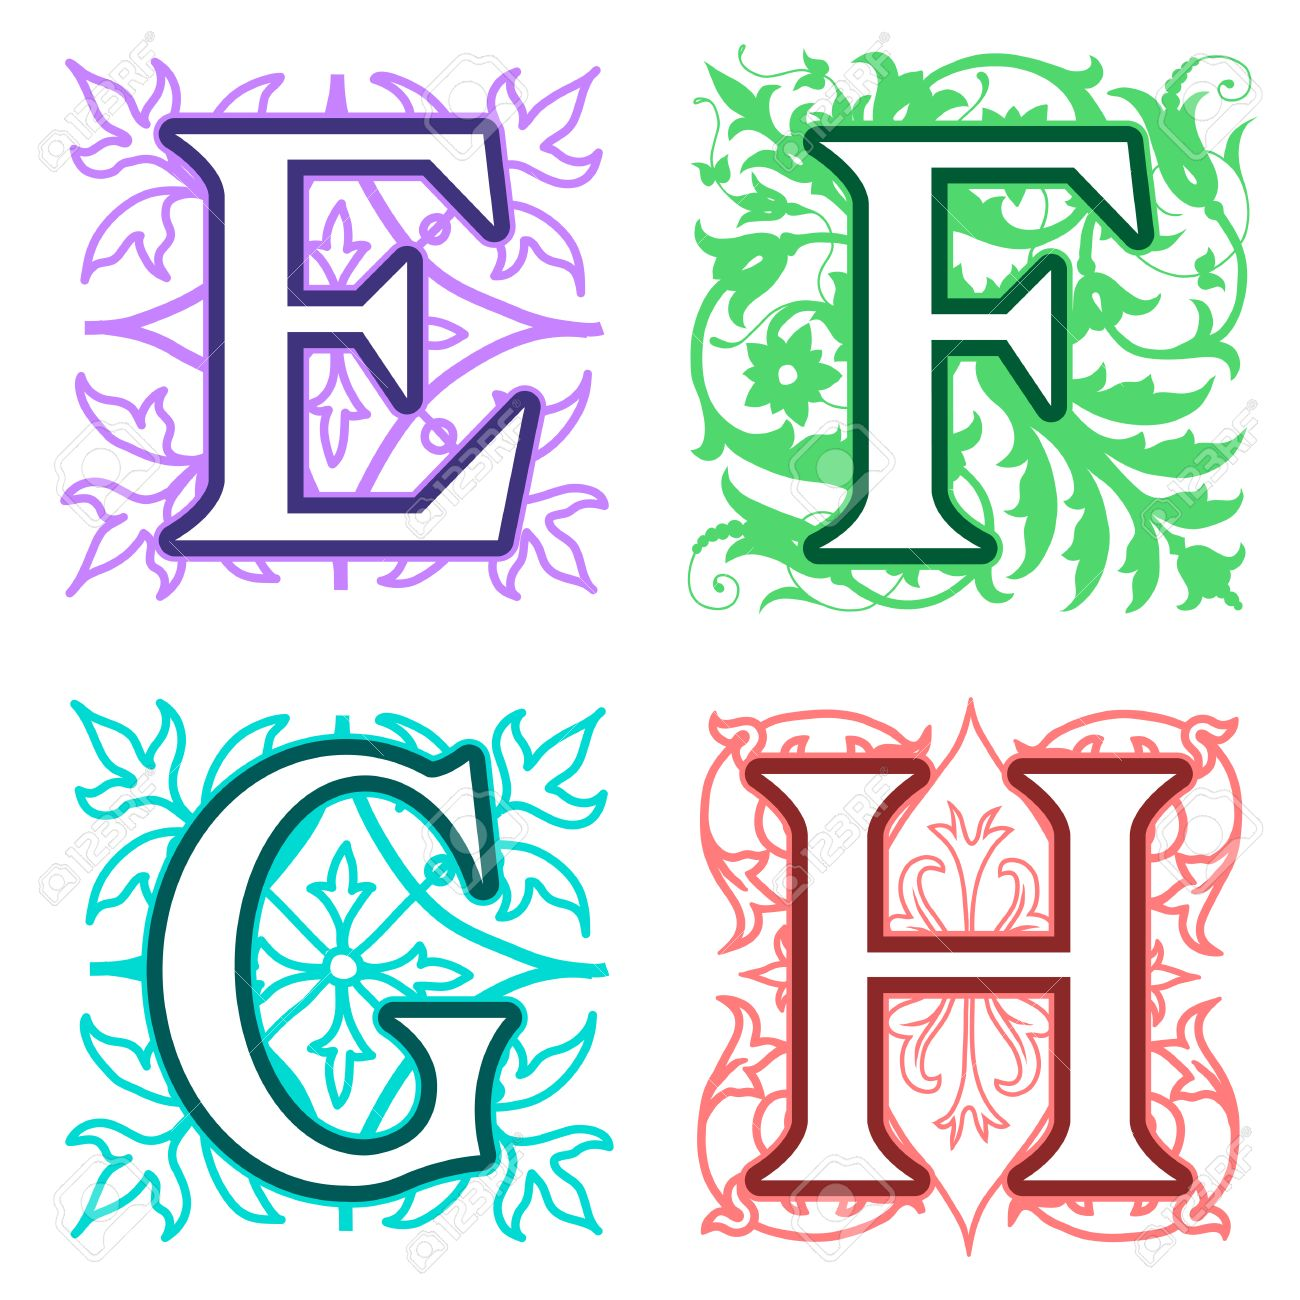 Decorative E F G H Alphabet Letters With Vintage Floral Elements In